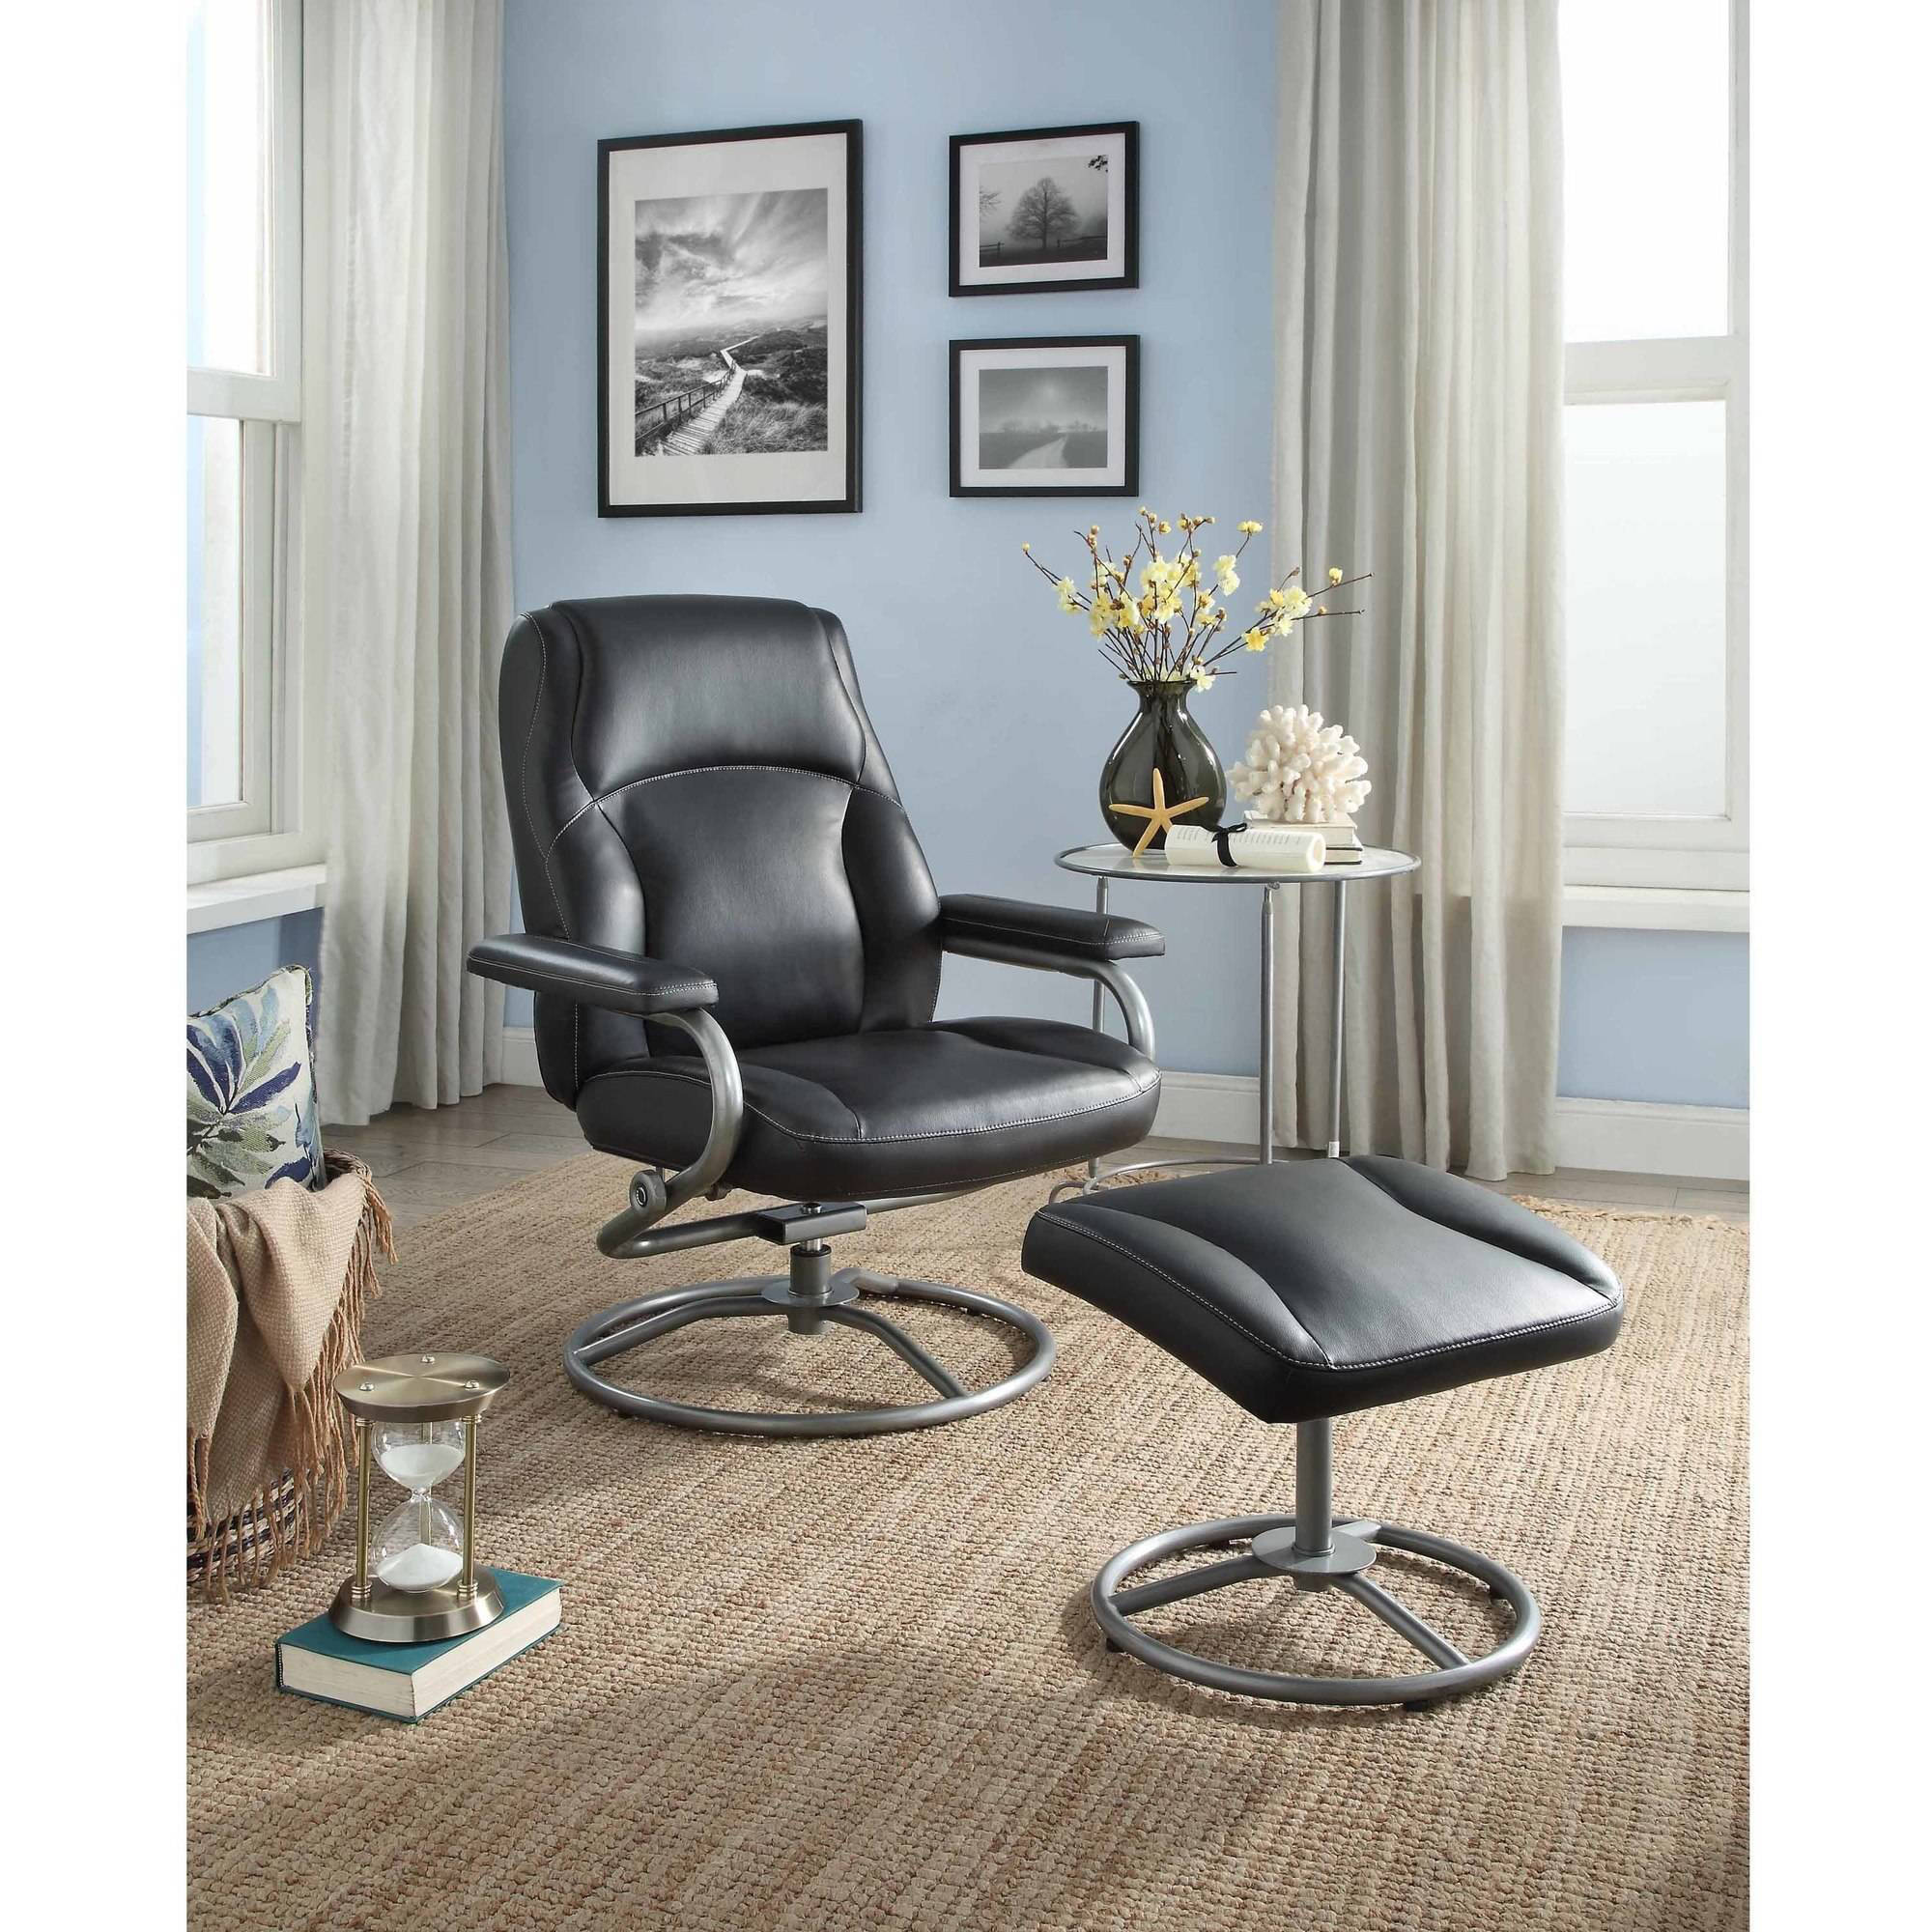 Recliner And Ottoman Set, Multiple Colors   Walmart.com